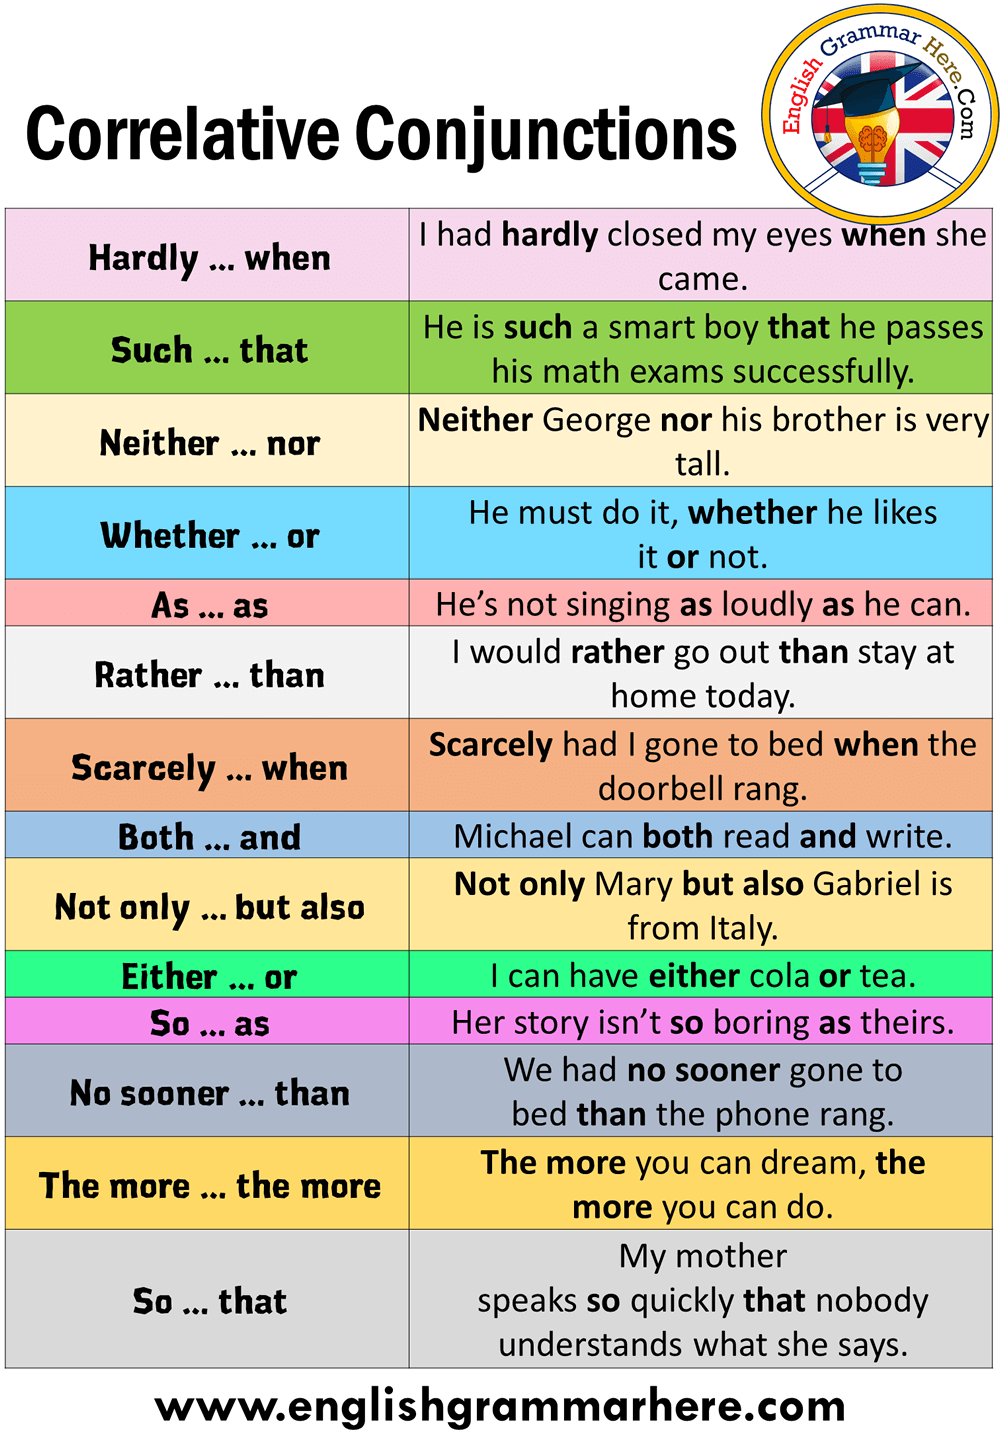 English Correlative Conjunctions List and Example Sentences